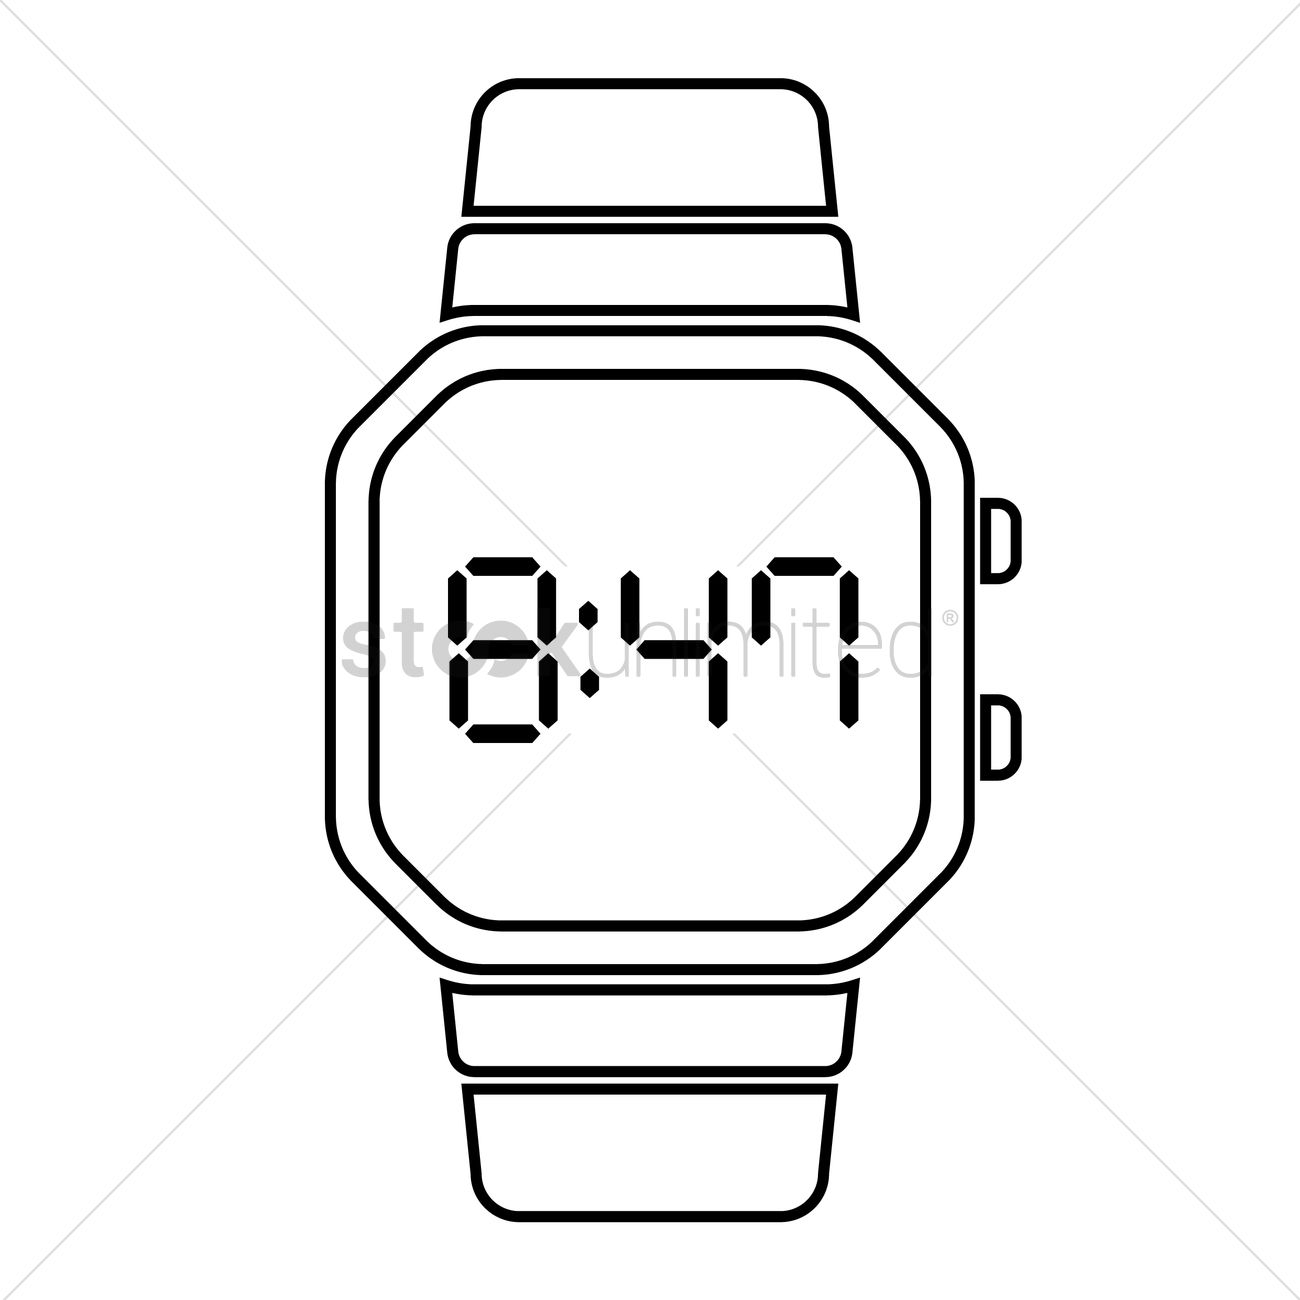 time digital watch watches wrist watch technology technologies smart rh stockunlimited com Time Clip Art Wearable Technology Clip Art